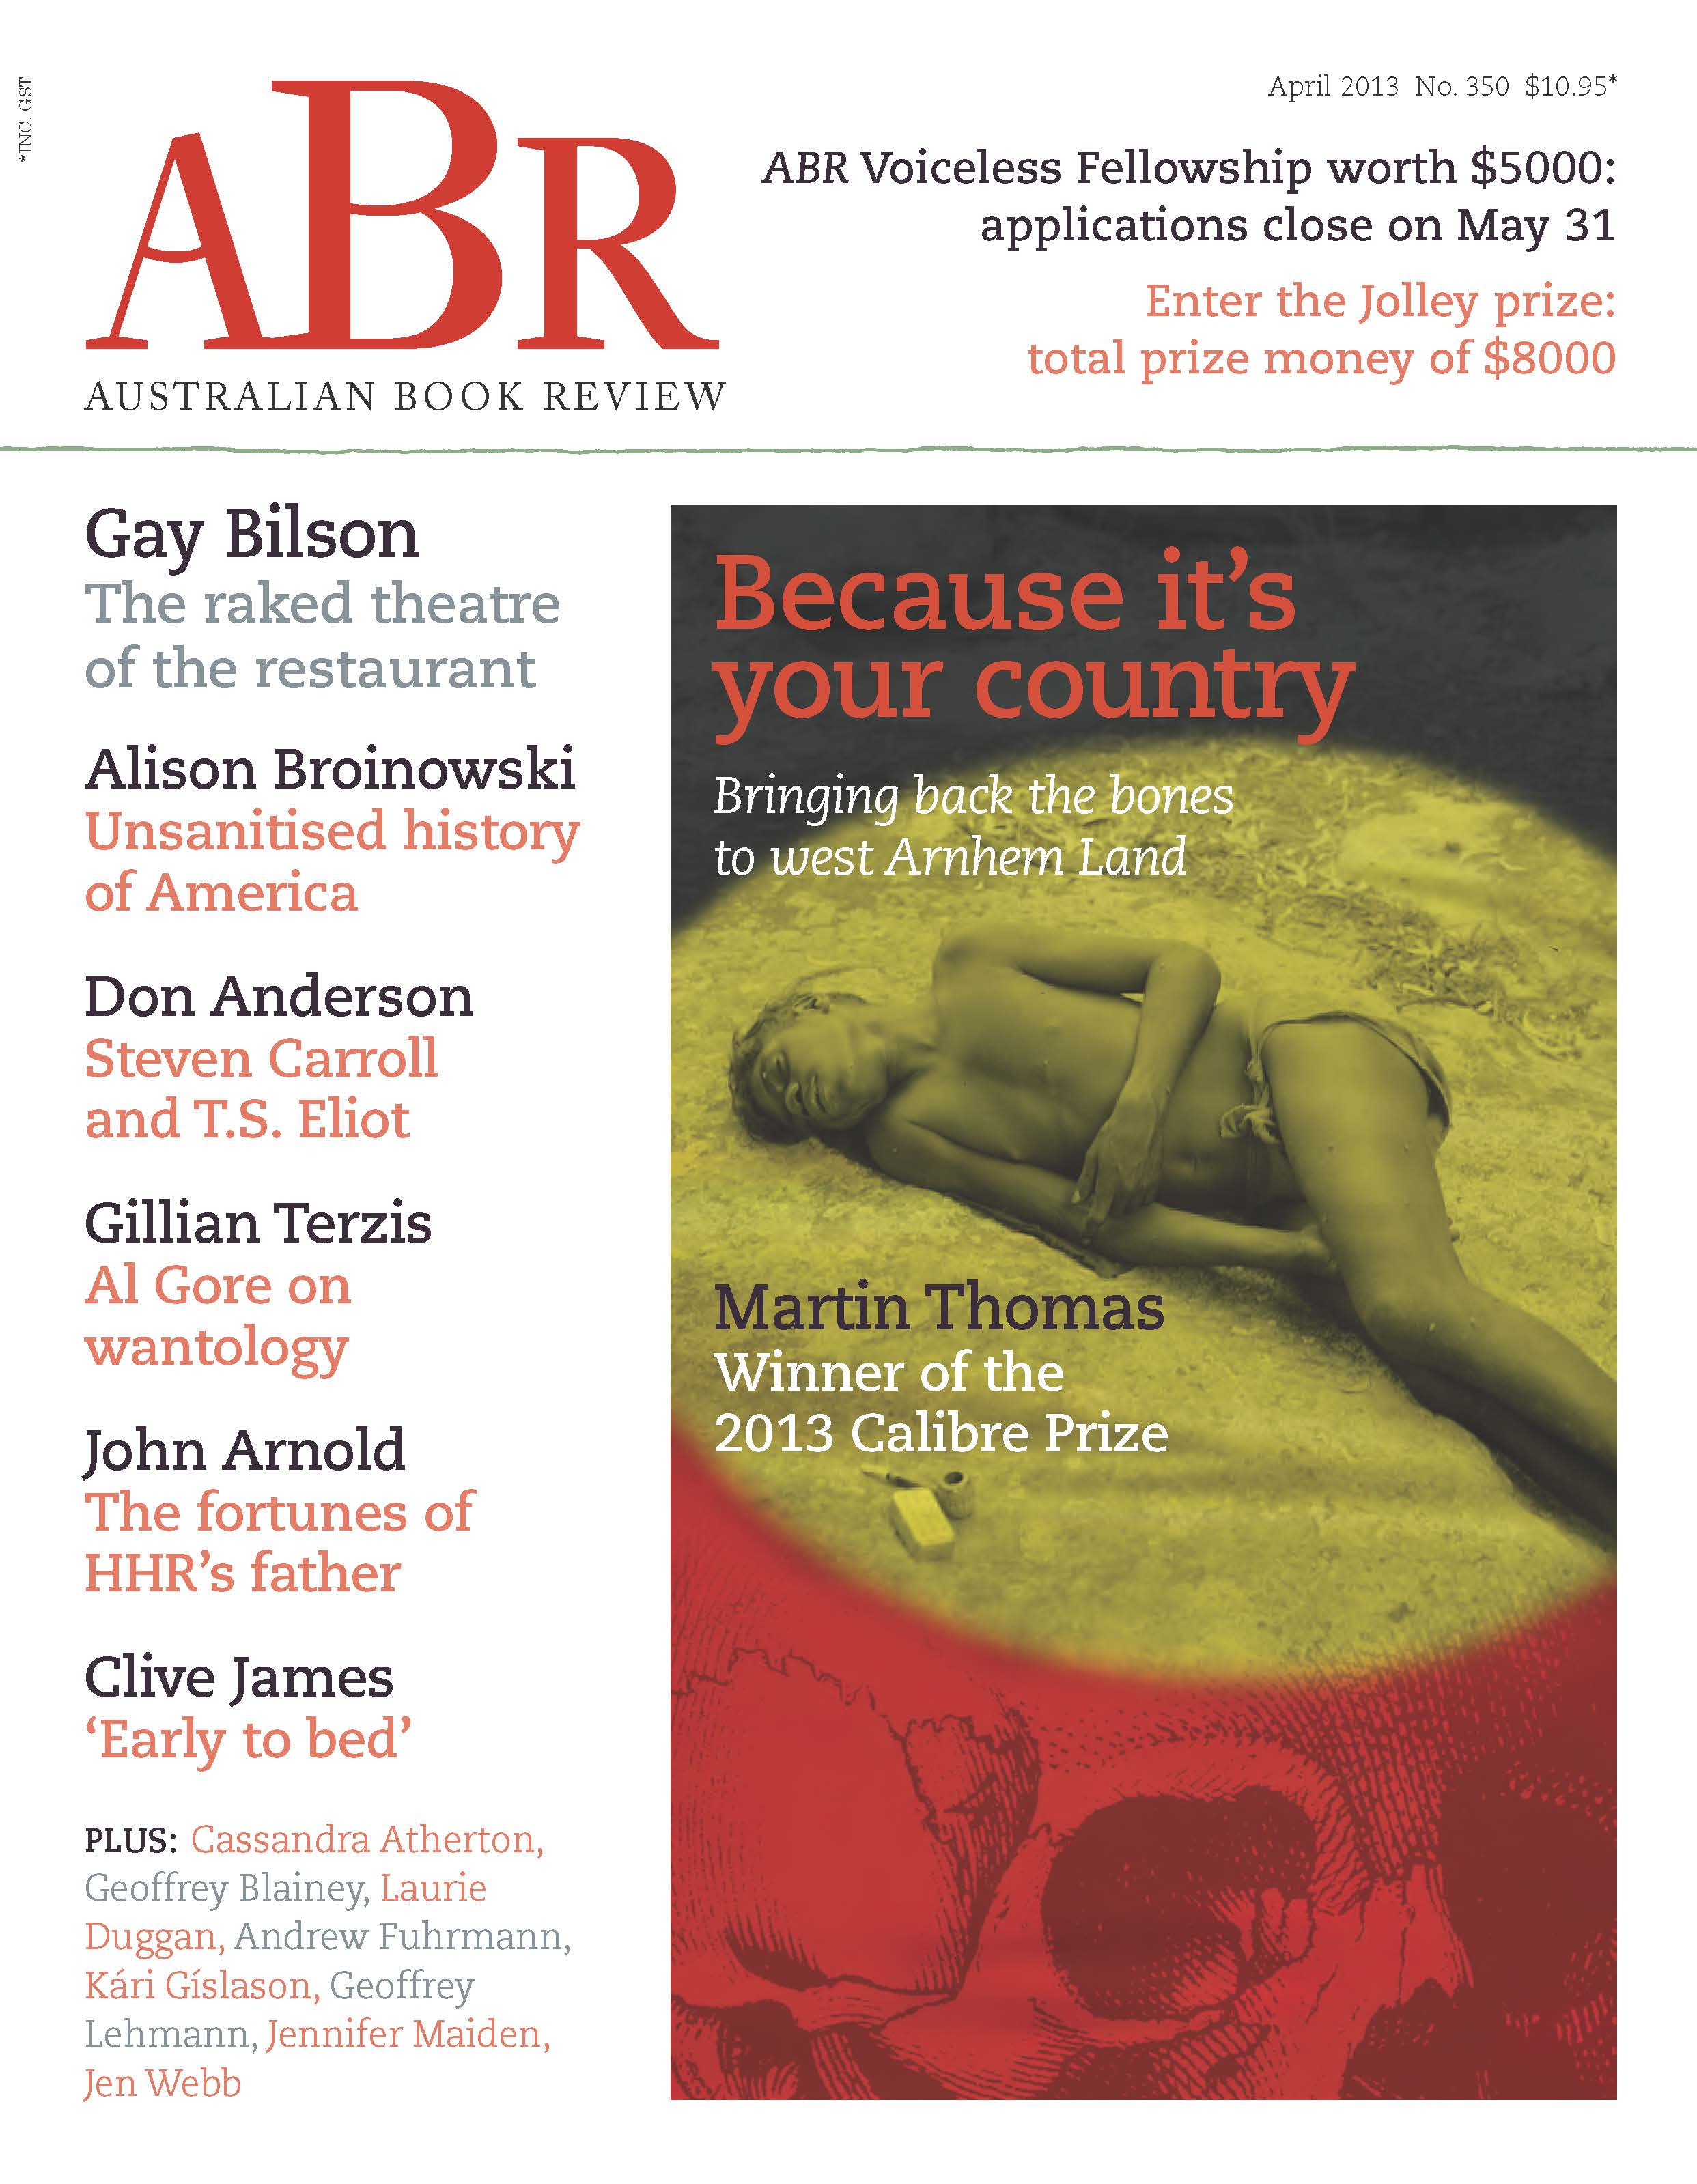 ABR April 2013 cover